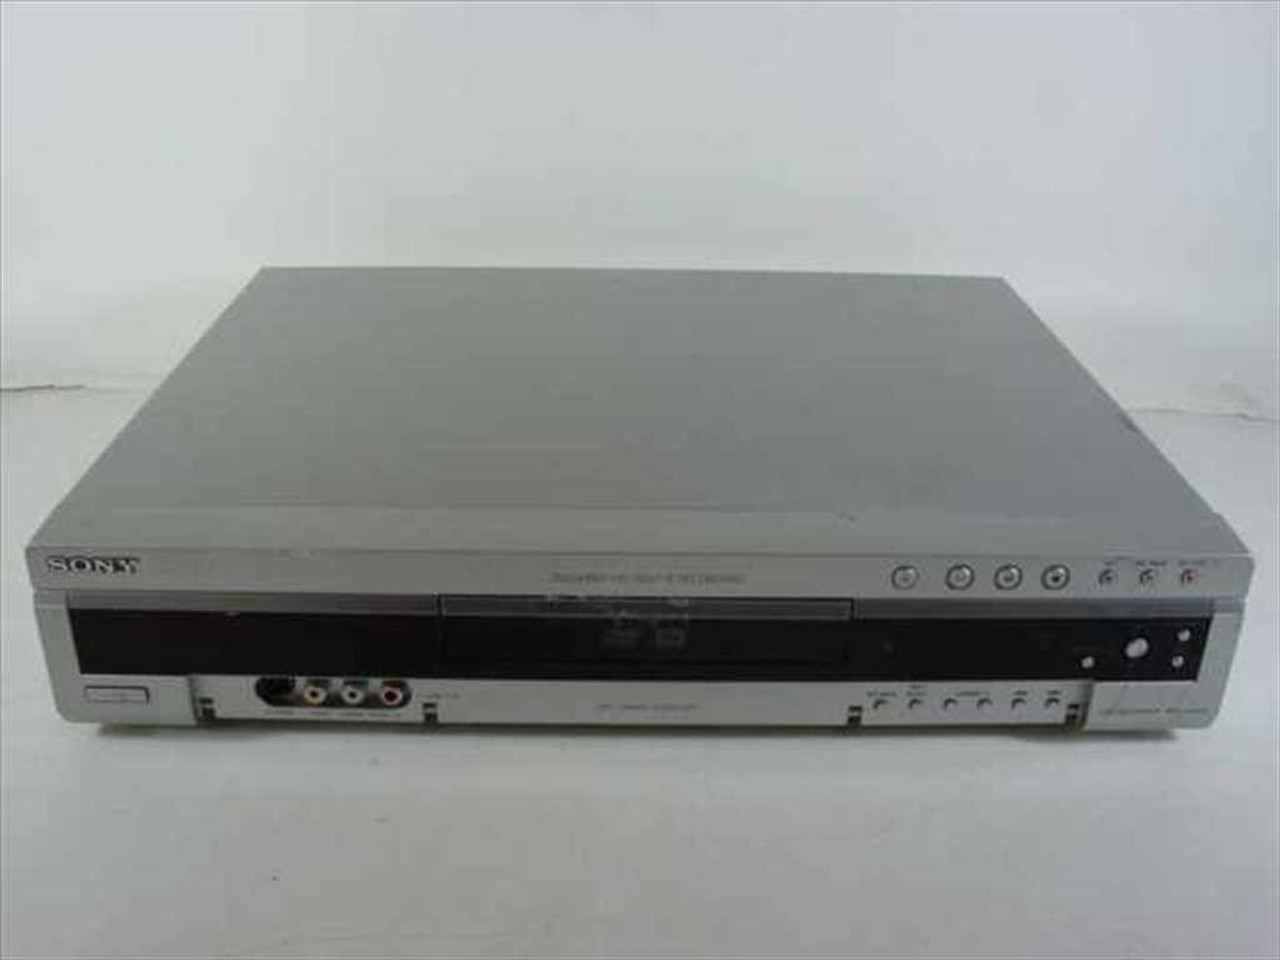 sony rdr gx300 dvd r rw recorder as is no power recycledgoods com rh recycledgoods com sony dvd recorder rdr gx300 instruction manual Sony RDR GX300 Firmware Upgrade